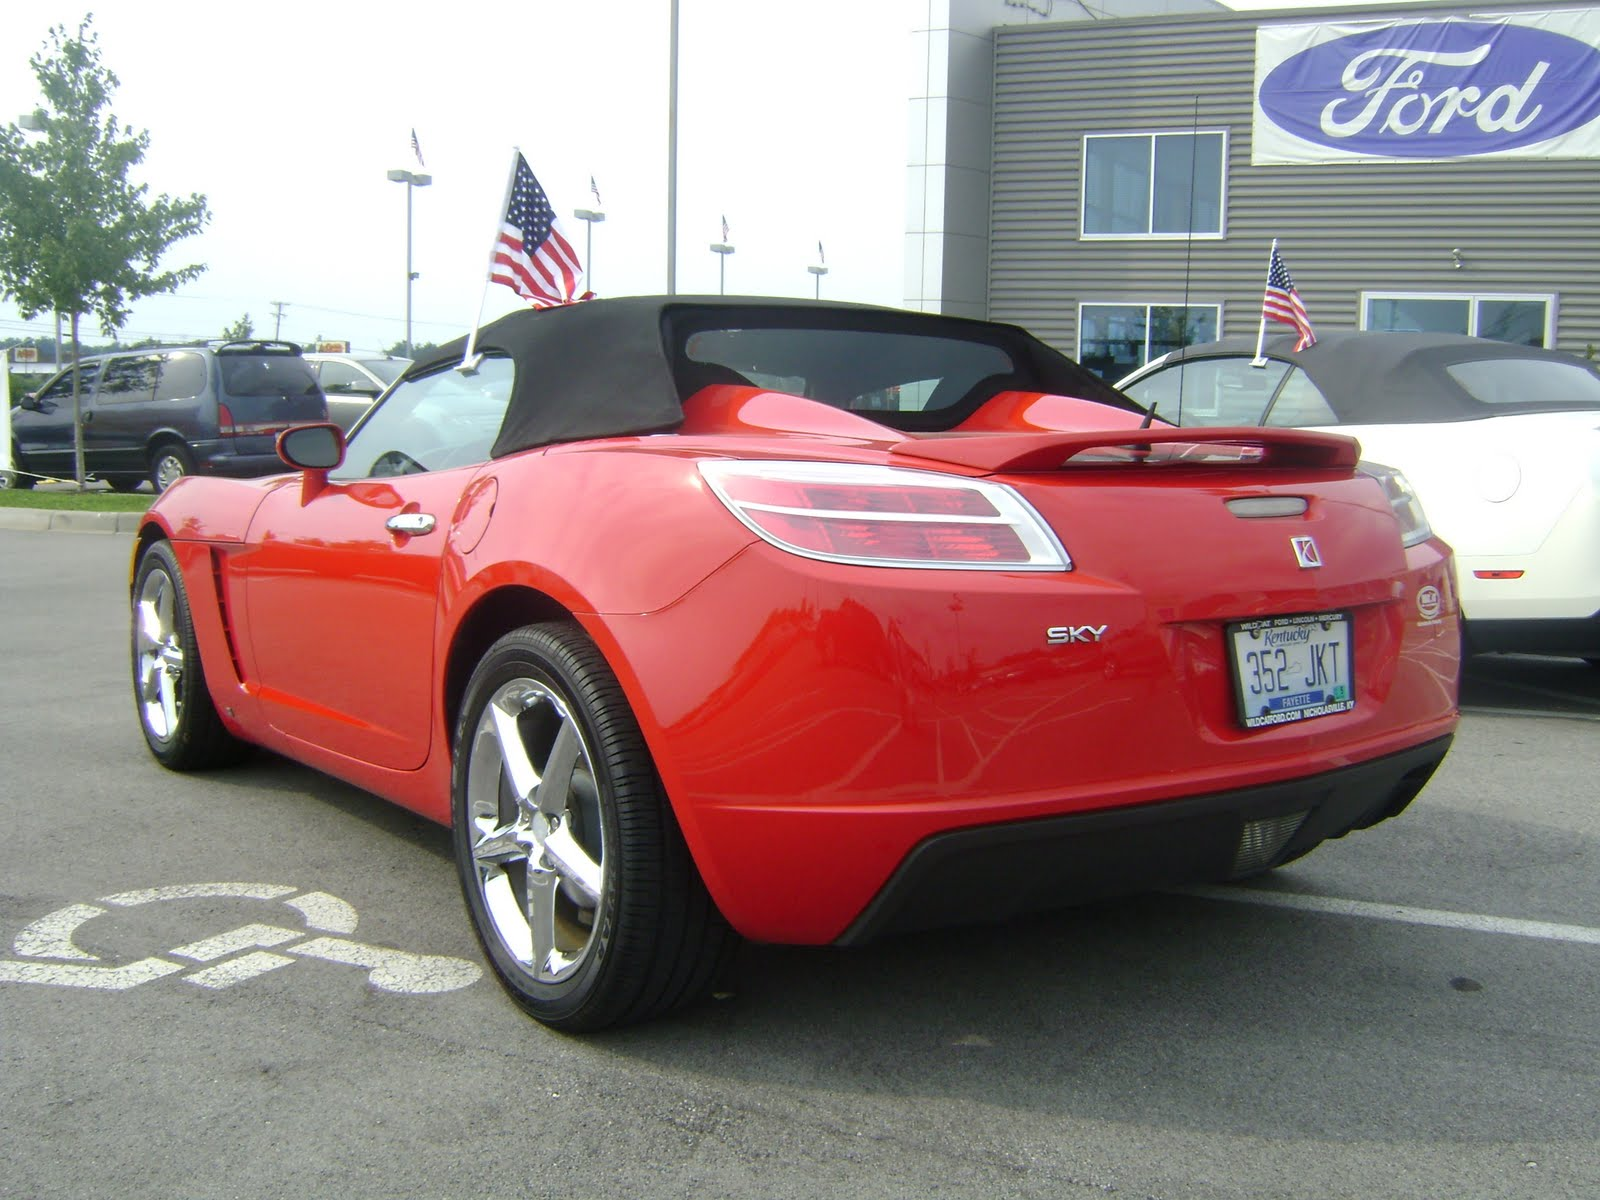 My New Workplace Career Spot Wildcat Ford Lincoln(fingers Crossed), And My  First Car Of The Week. This 2008 Saturn Sky Convertible, Two Seater Thrill  Ride ...